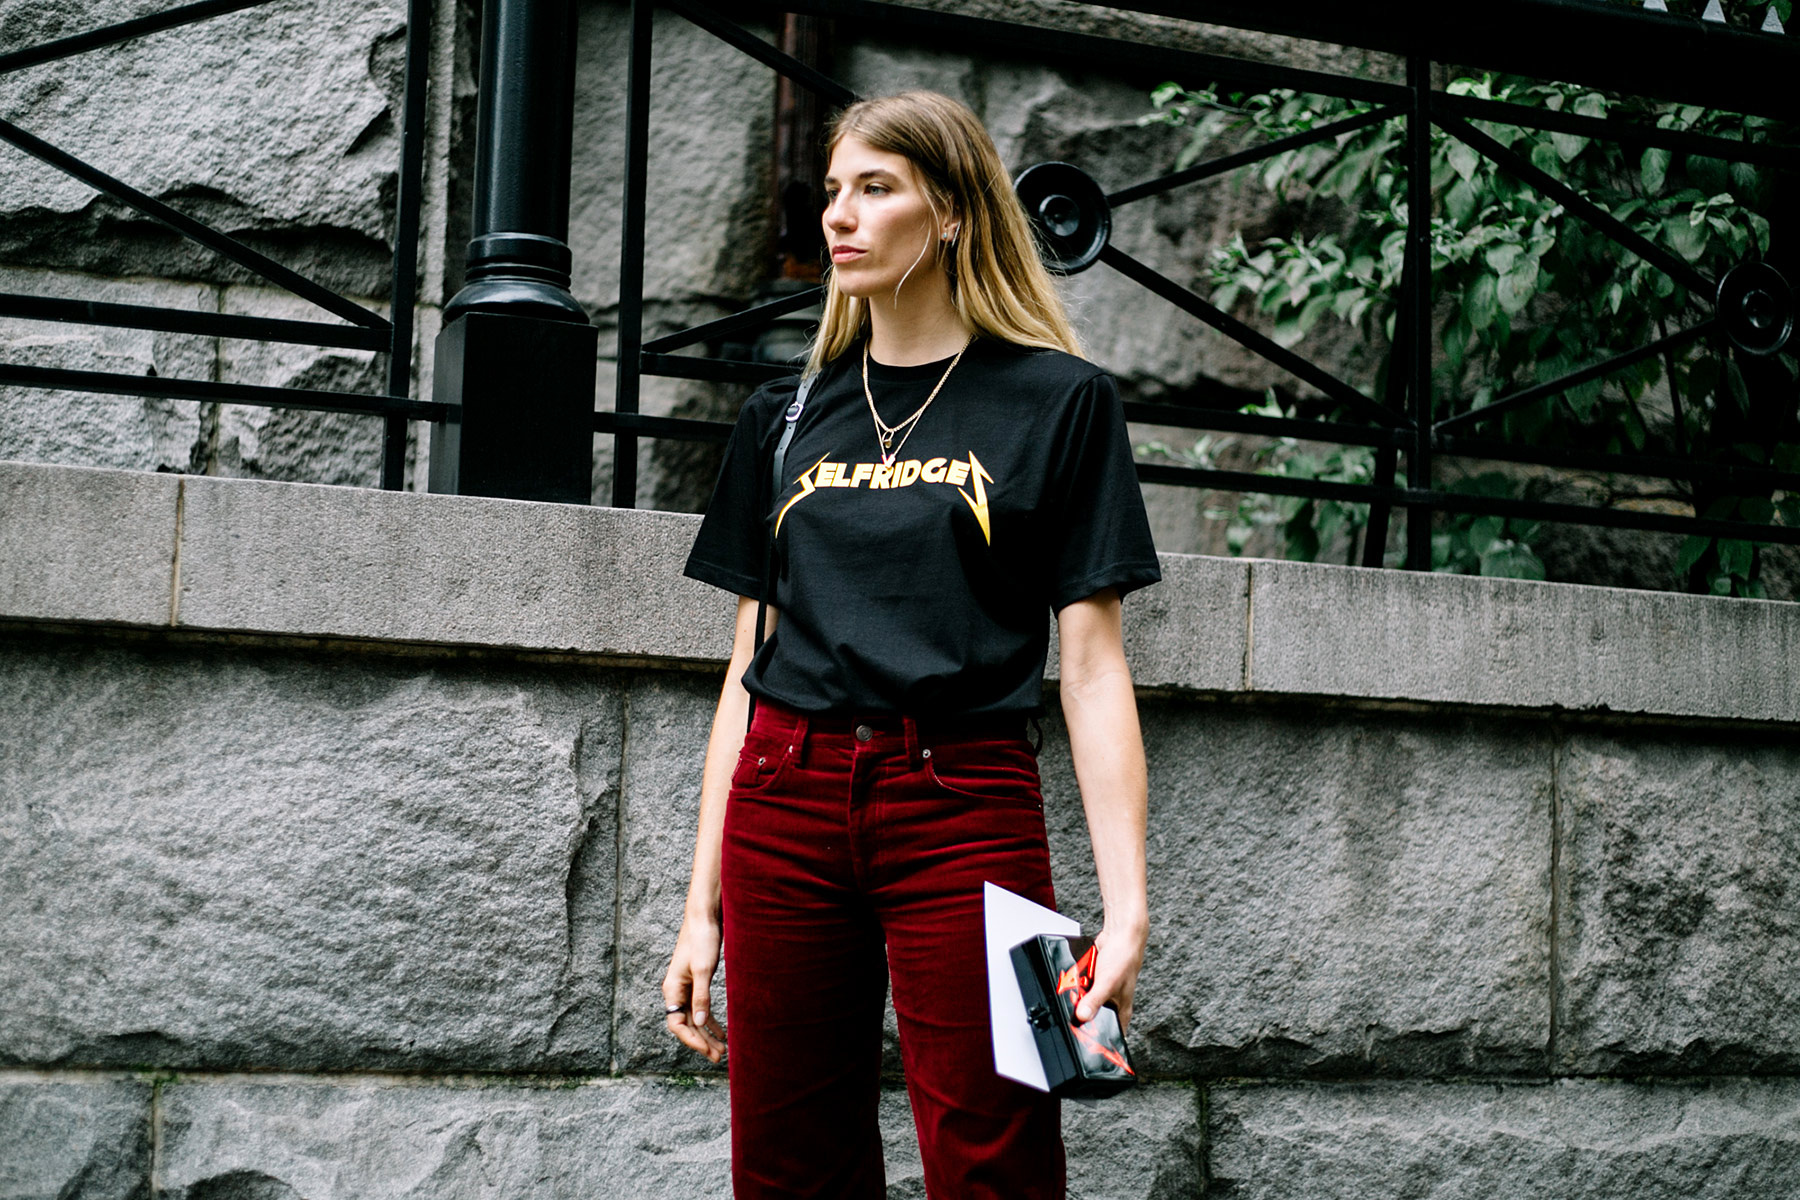 street_style_new_york_fashion_week_primavera_verano_2018_381719159_1800x1200.jpg